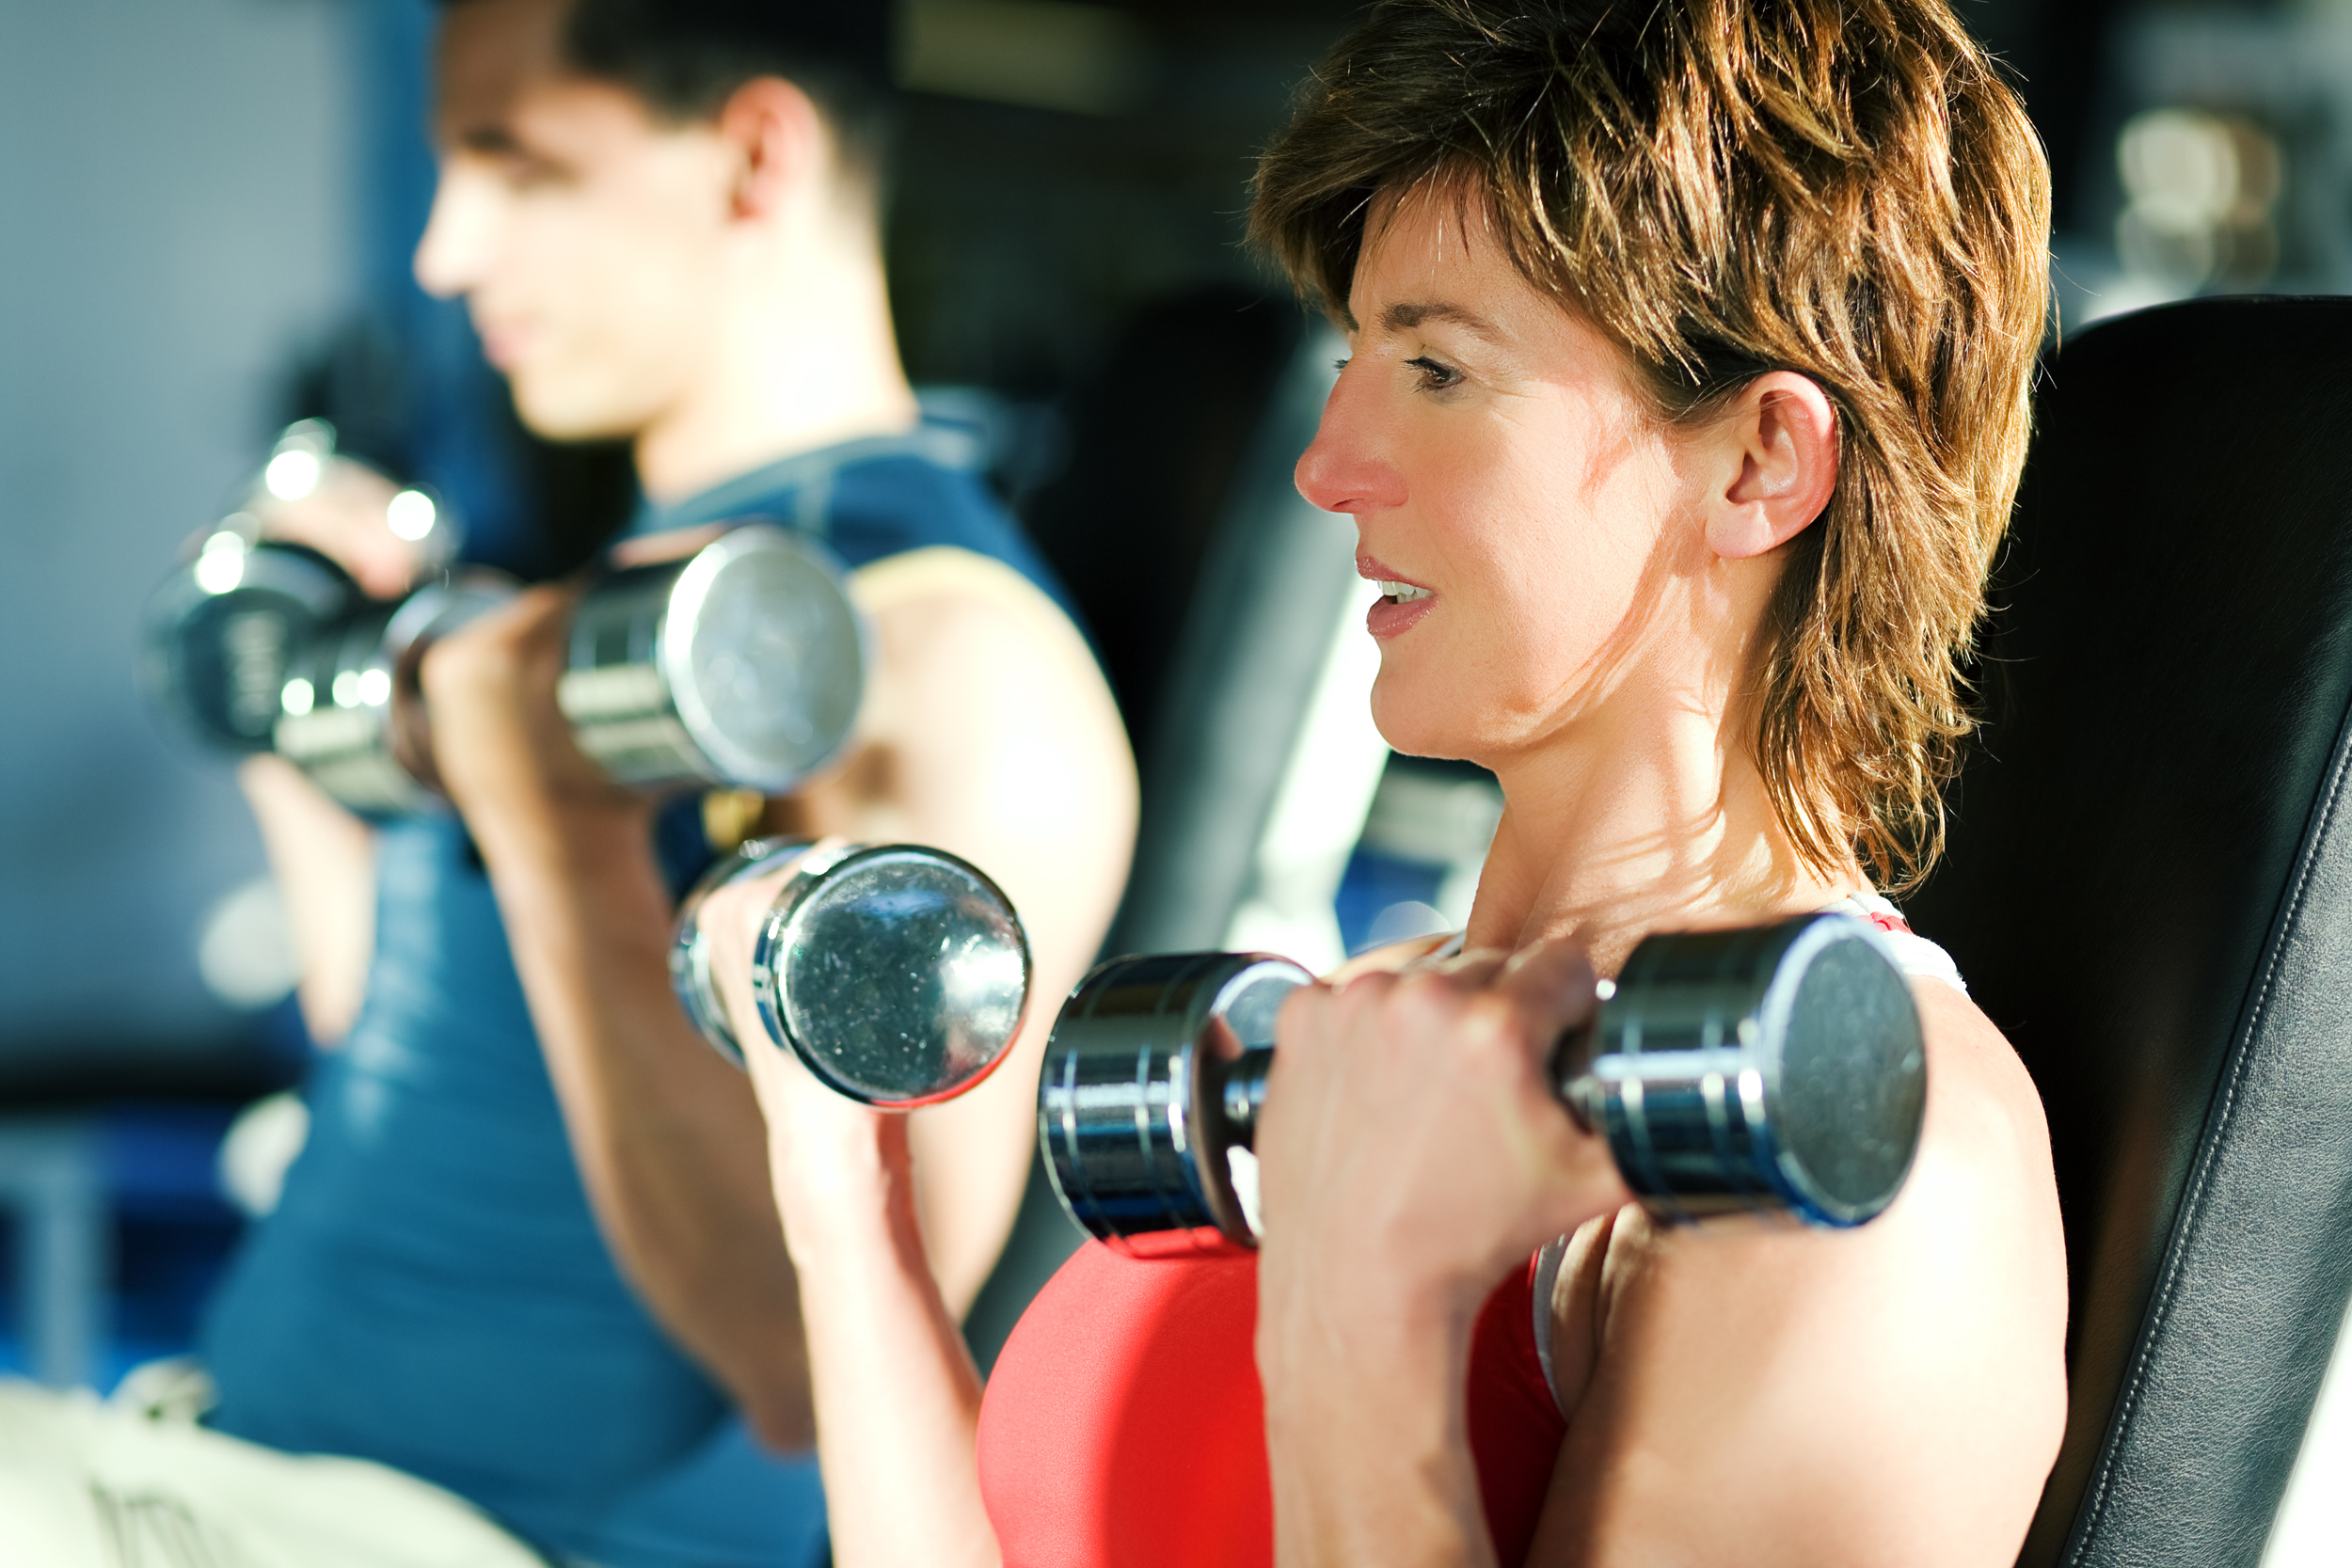 2013 01 02 woman lifting dumb bells.jpg